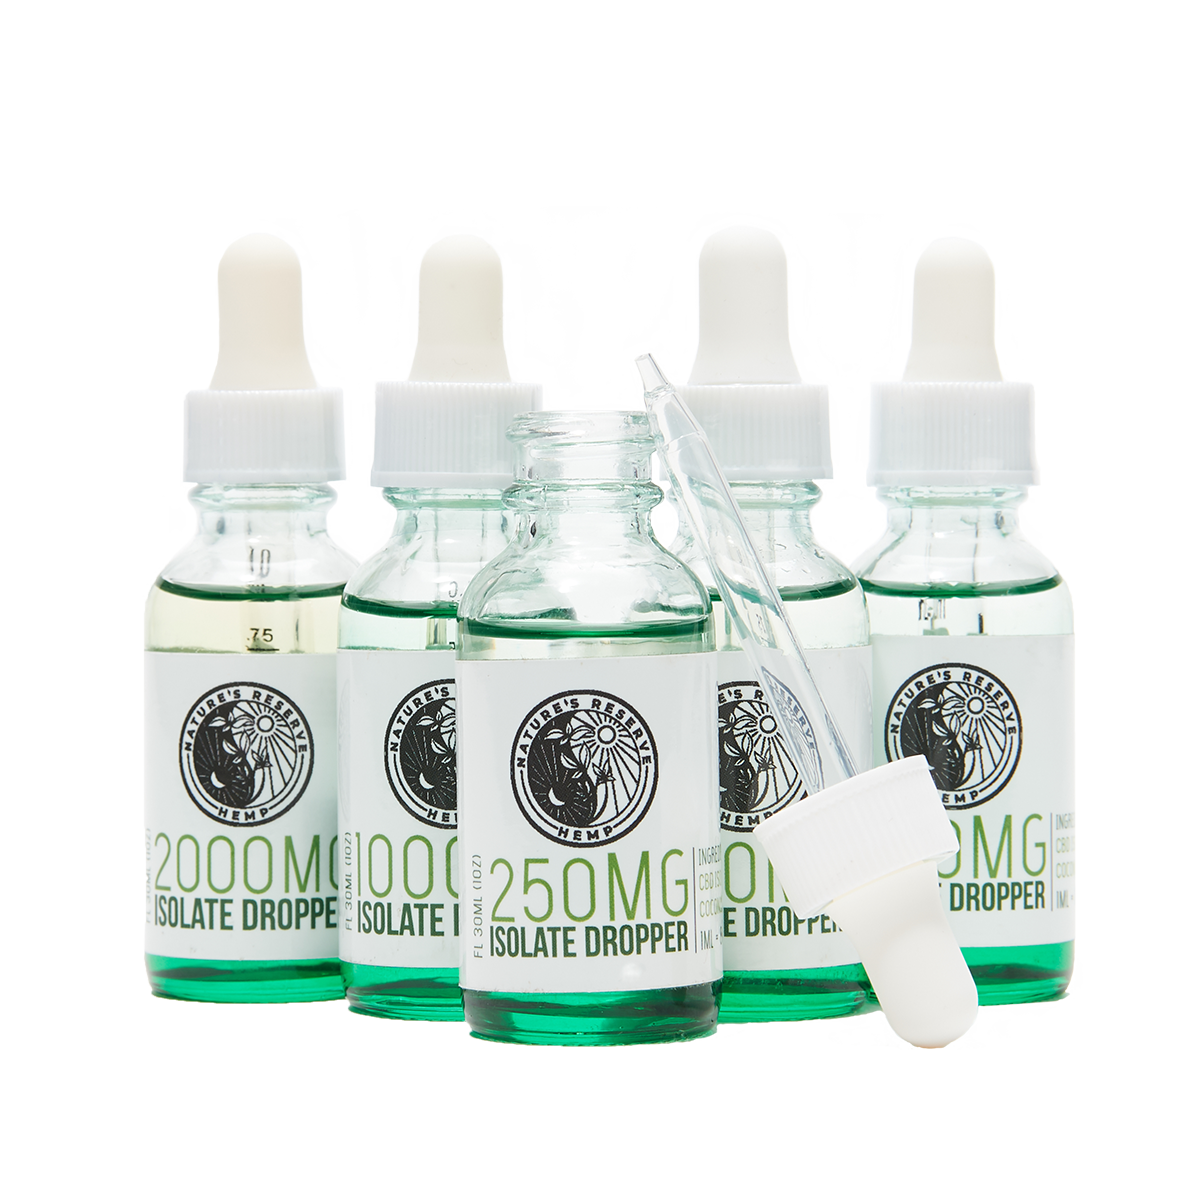 500 MG CBD Isolate Tincture Oil Droppers - Terpene Infused